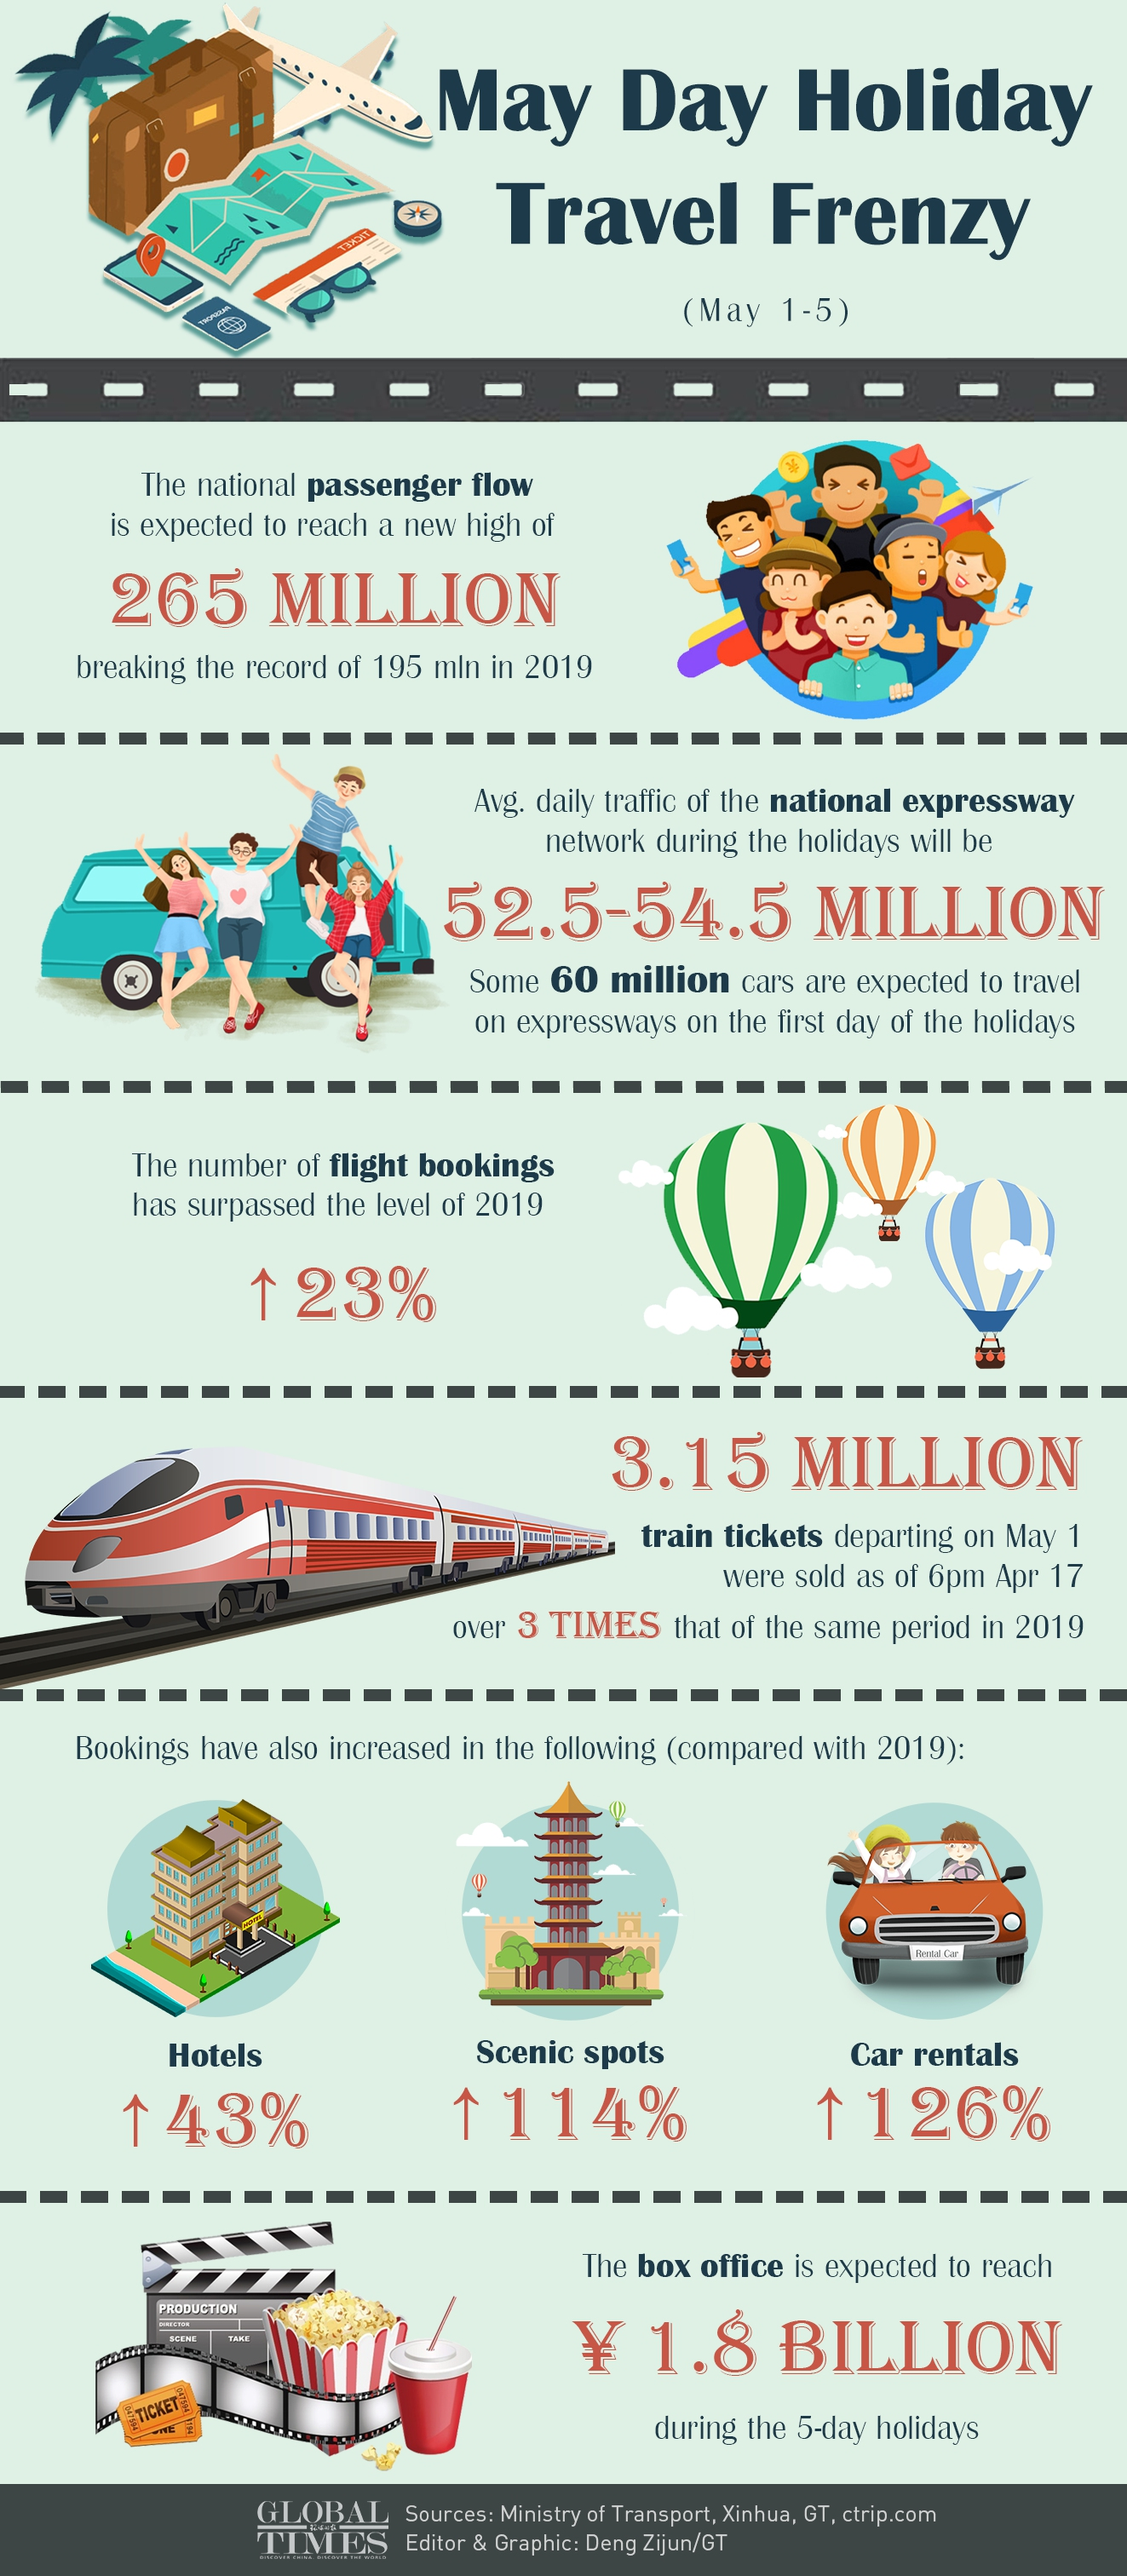 May Day Holiday Travel Frenzy Infographic: Deng Zijun/GT